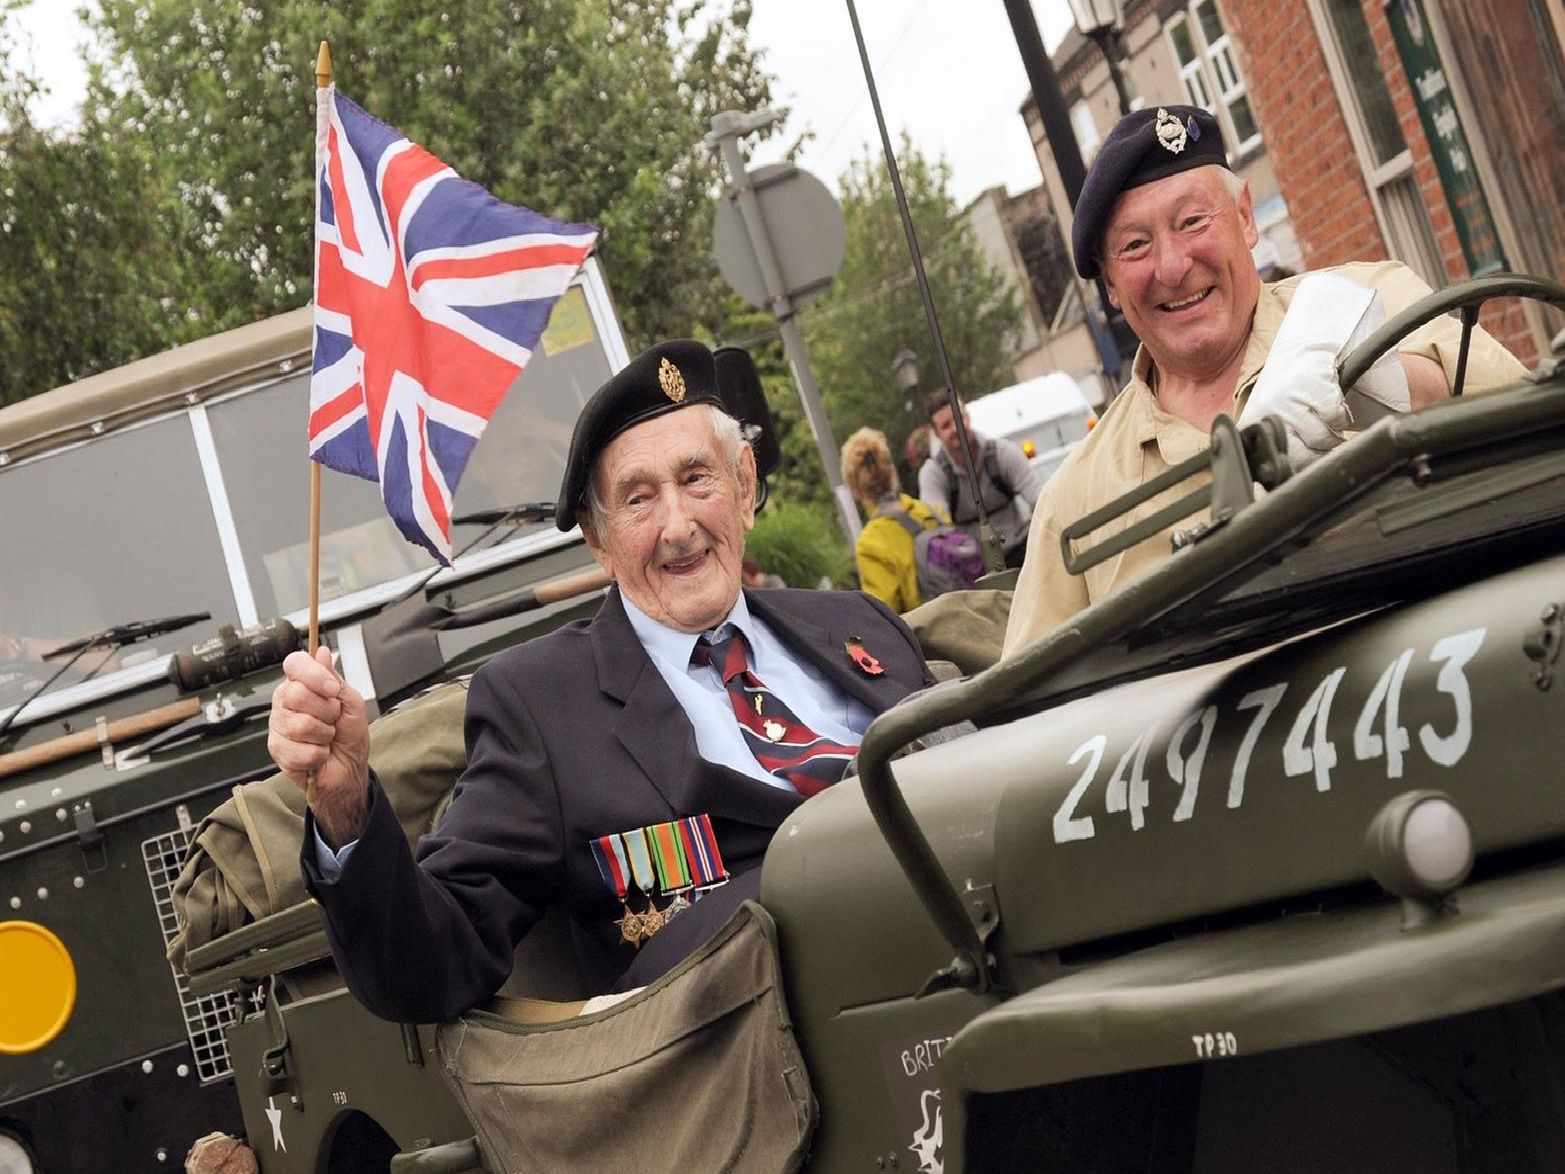 Royal Air Force veteran John Wilson flies the flag with driver Tony Bryan in a 1944 Willis Jeep at the procession's vanguard.